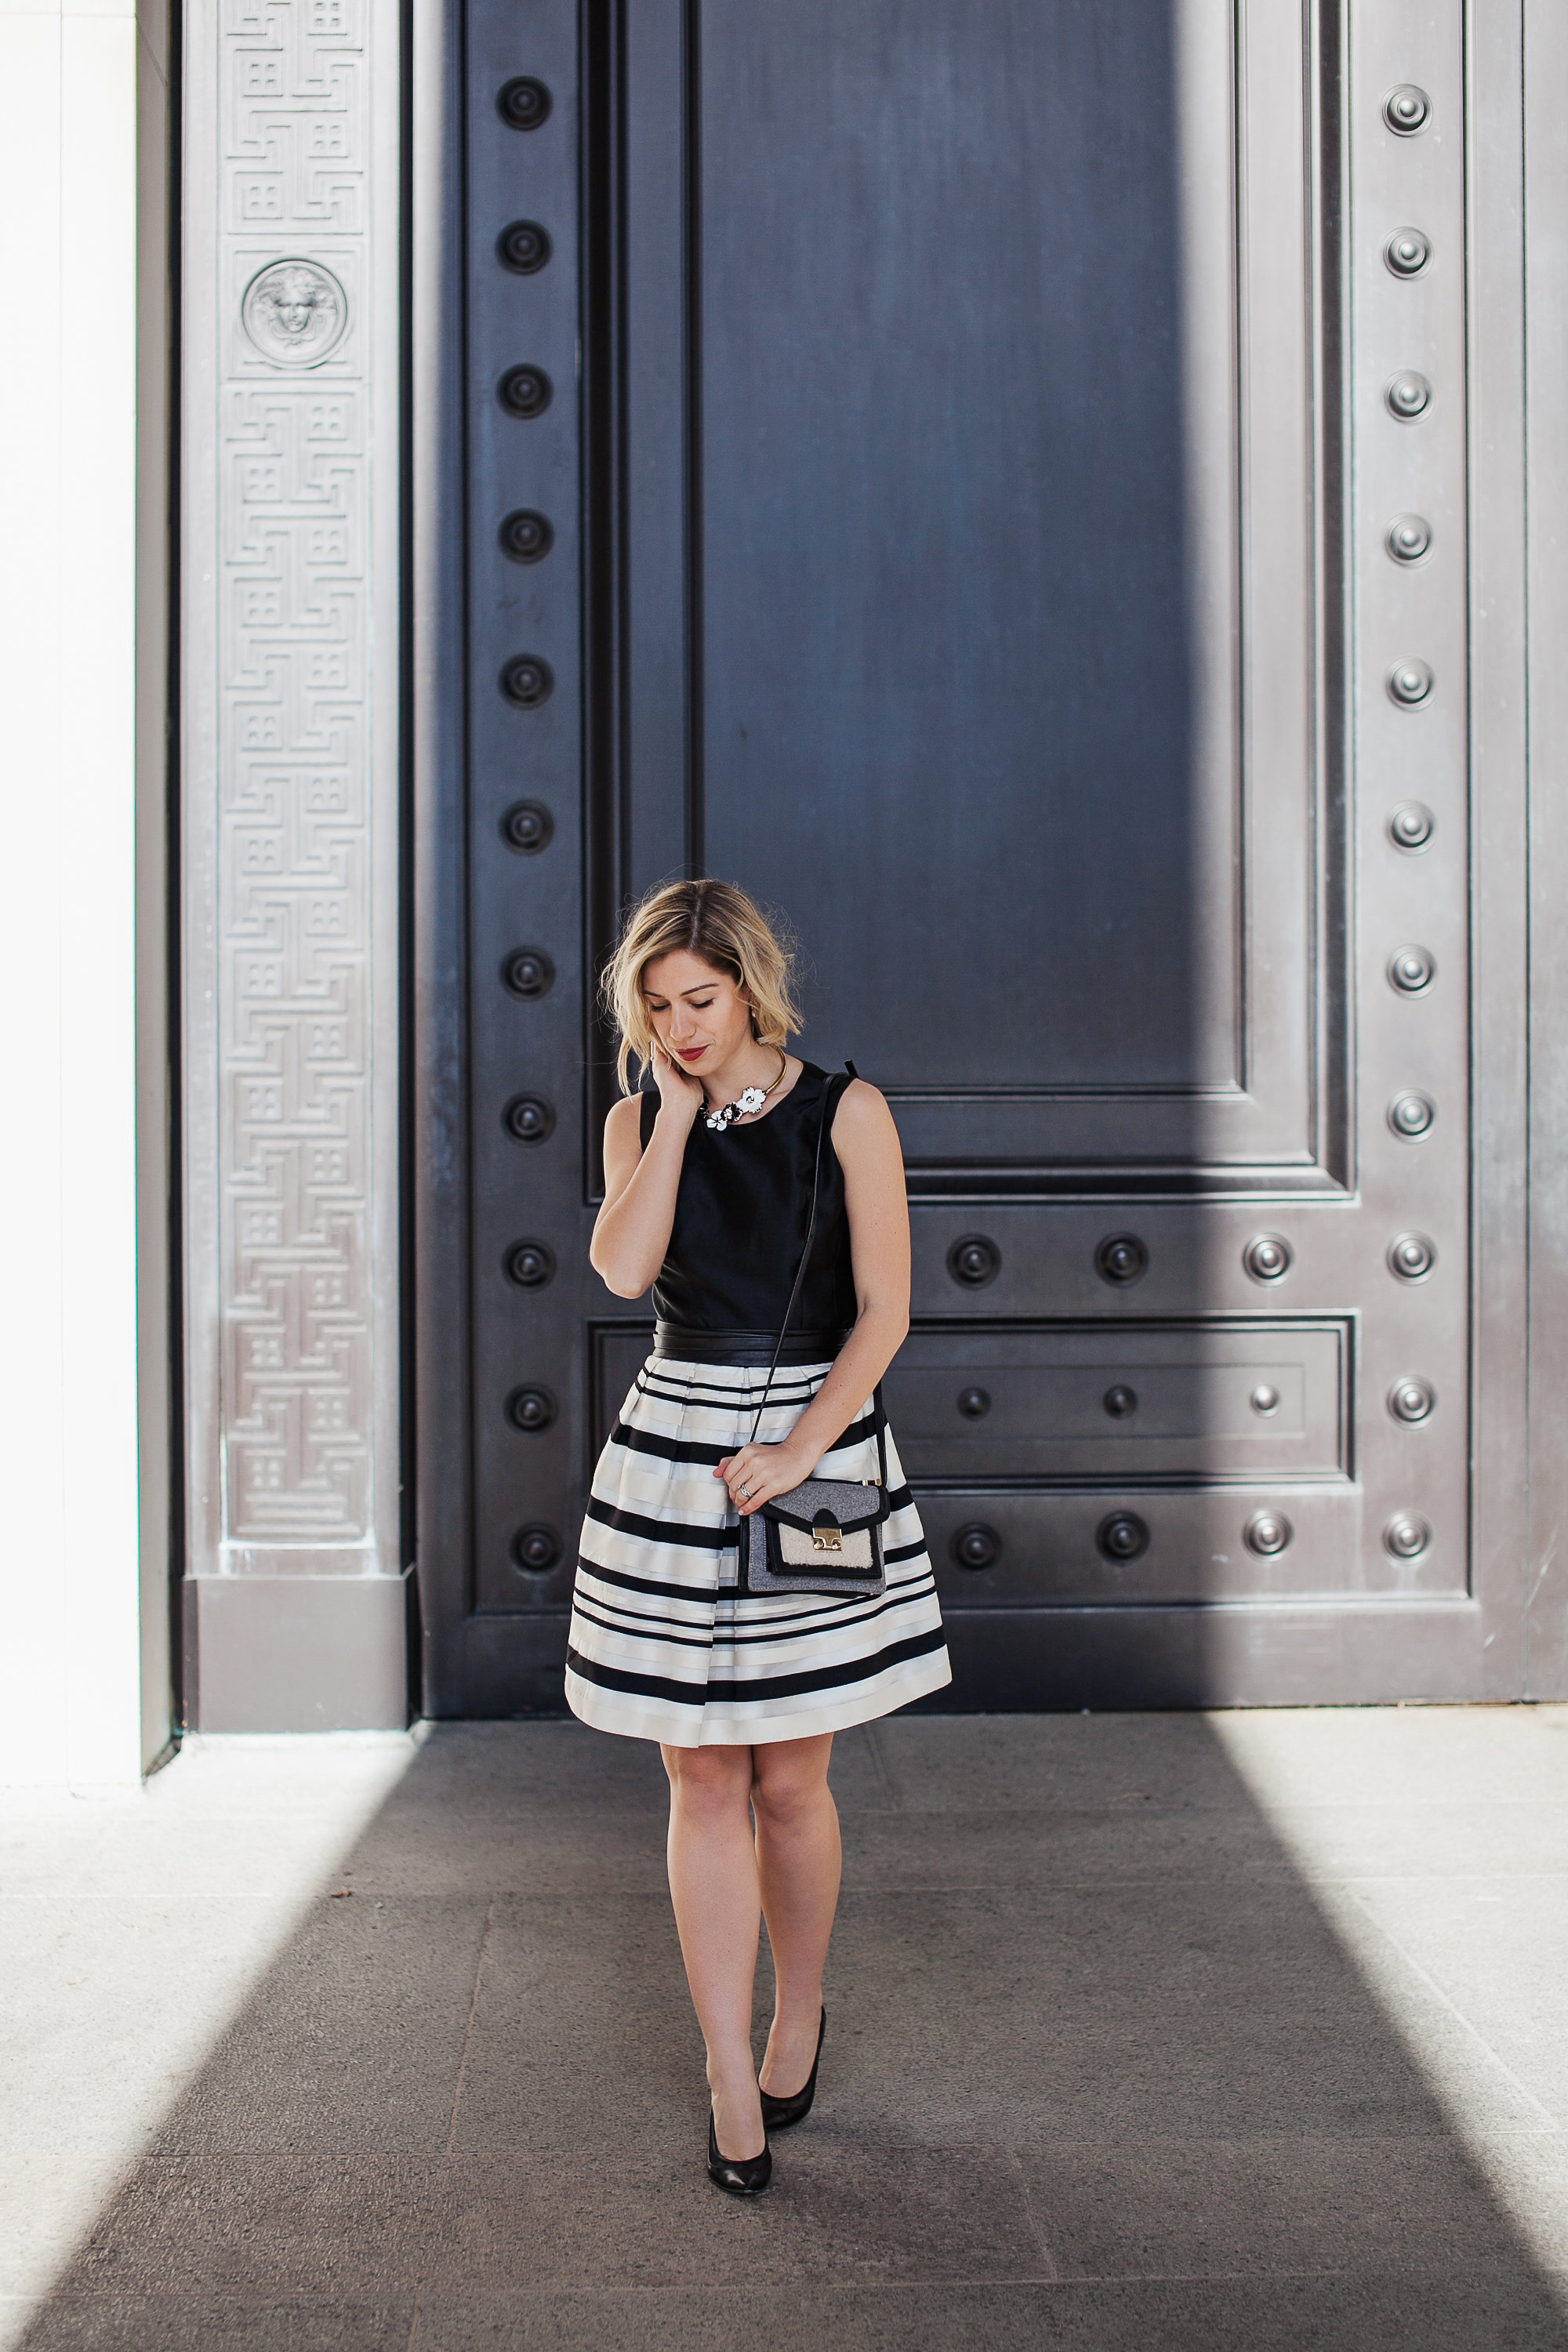 Black + white dress + leather belt + black pumps  (see full outfit post here!)